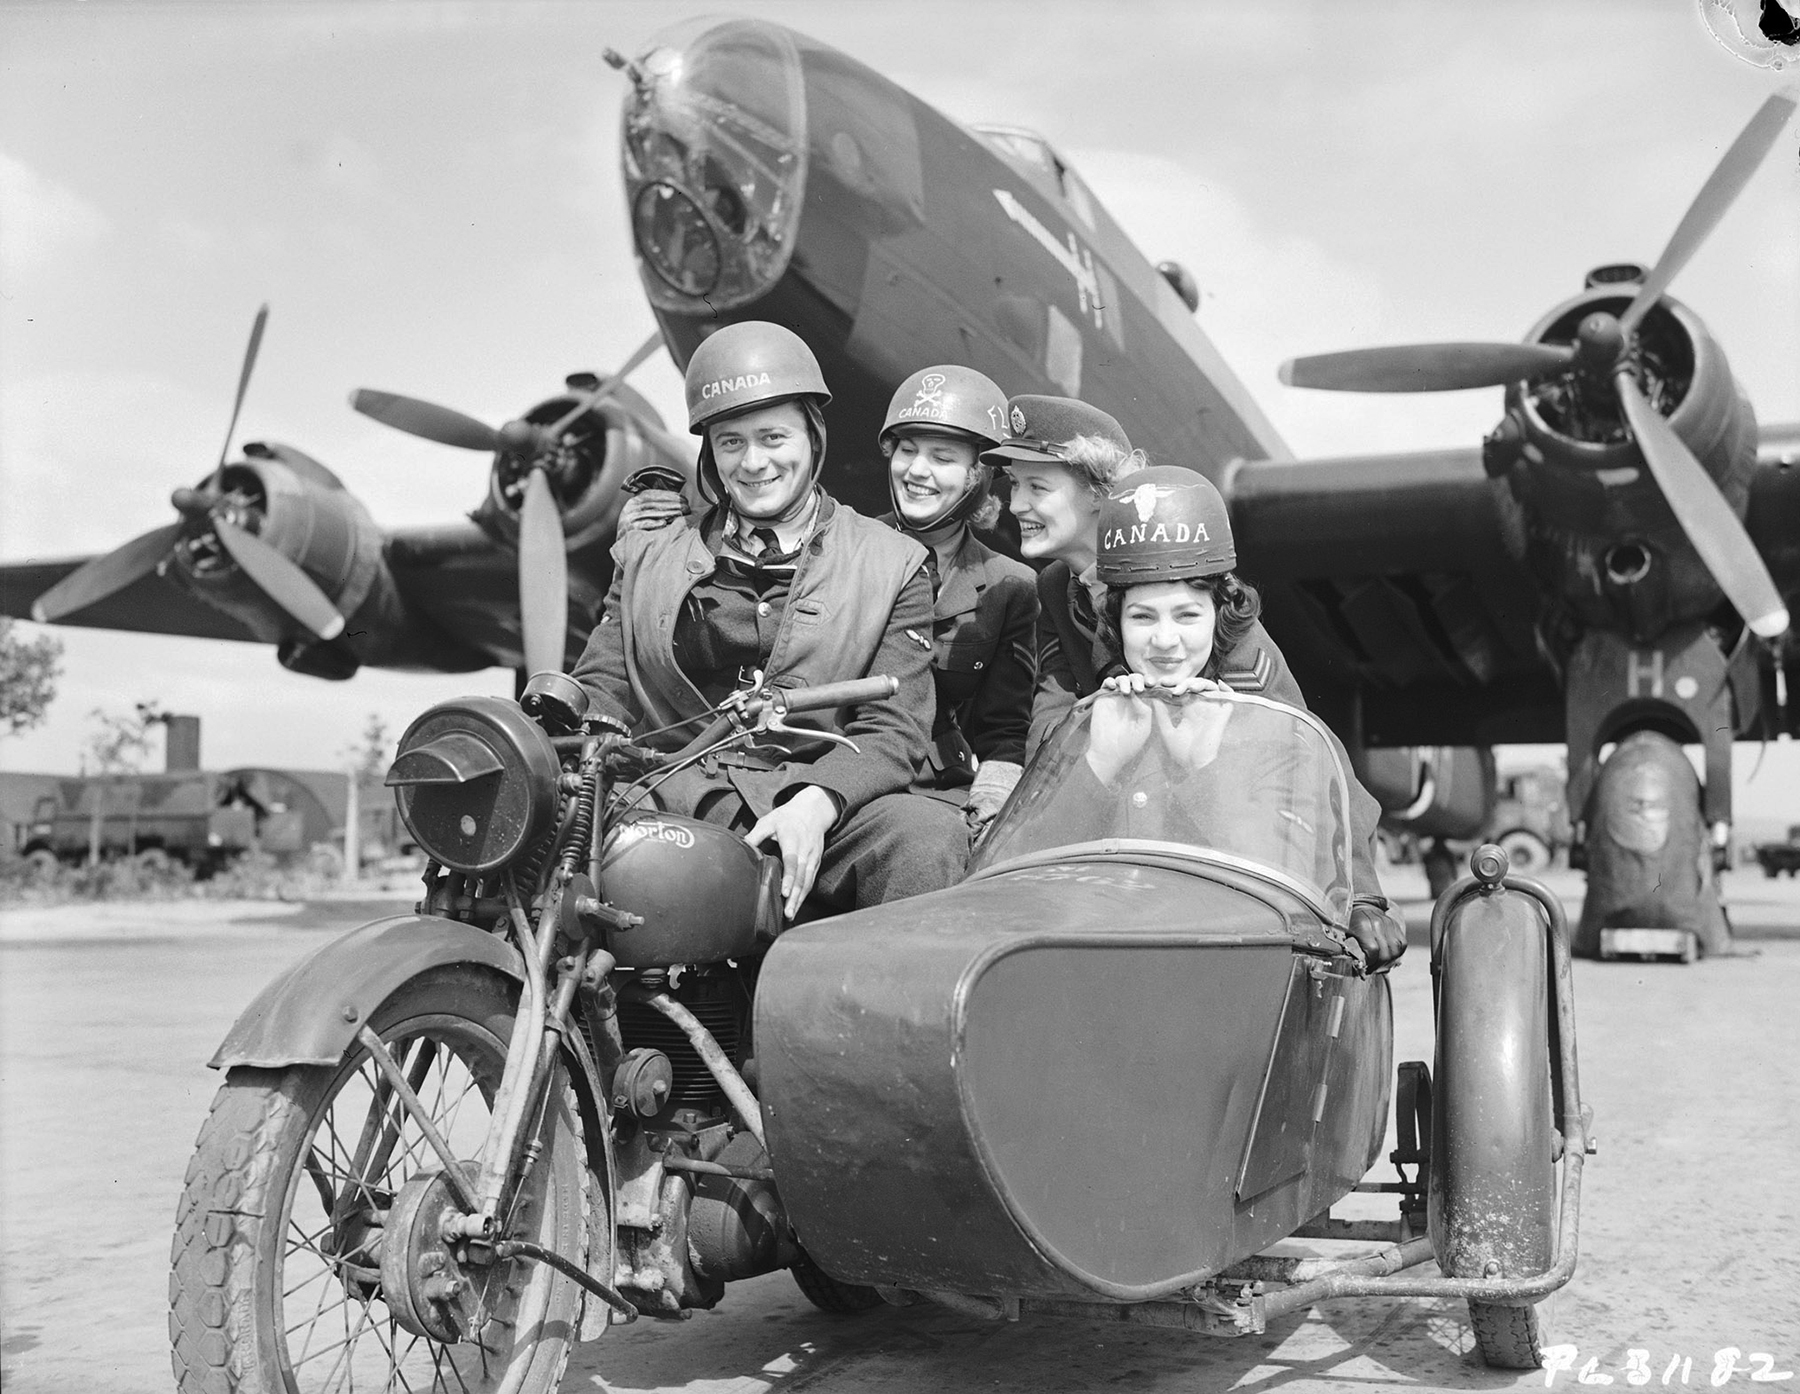 In a vintage black and white photo, four people in military uniforms are seated on a motorcycle or in its sidecar in front of a large aircraft.